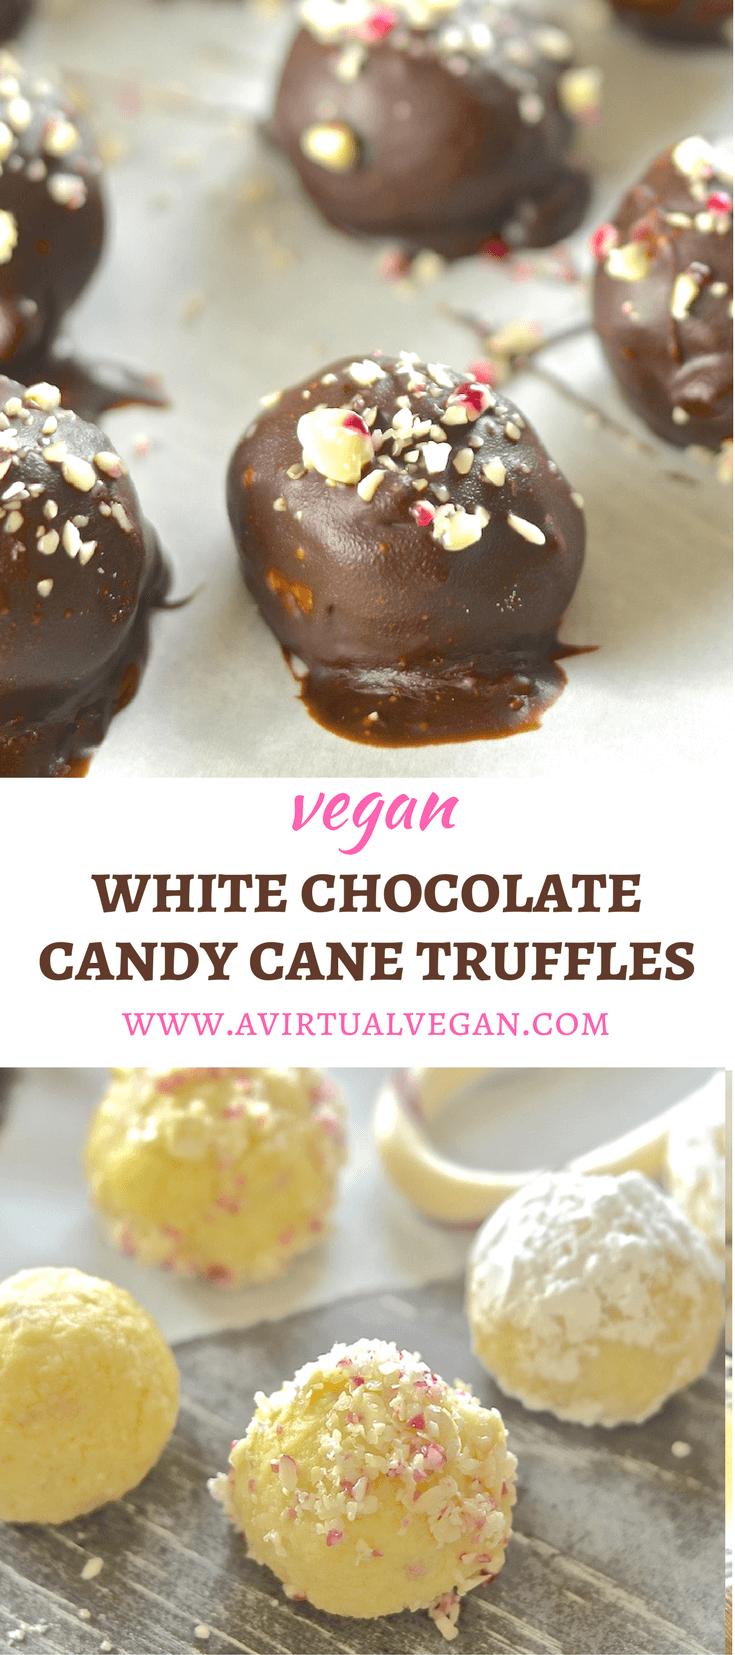 These festive Vegan White Chocolate Candy Cane Truffles are meltingly rich, sweet, creamy & indulgent.